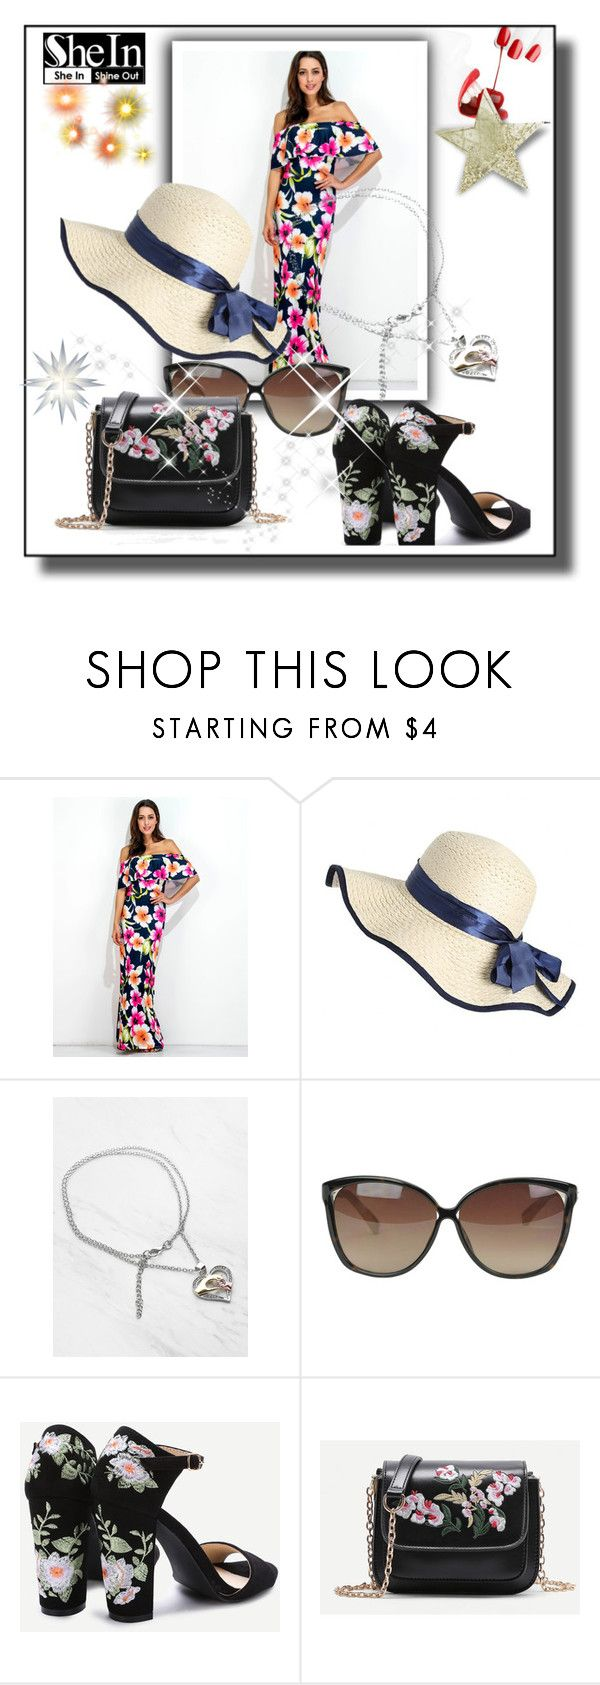 """""""Sheinside I"""" by azrahadzic ❤ liked on Polyvore featuring Linda Farrow"""